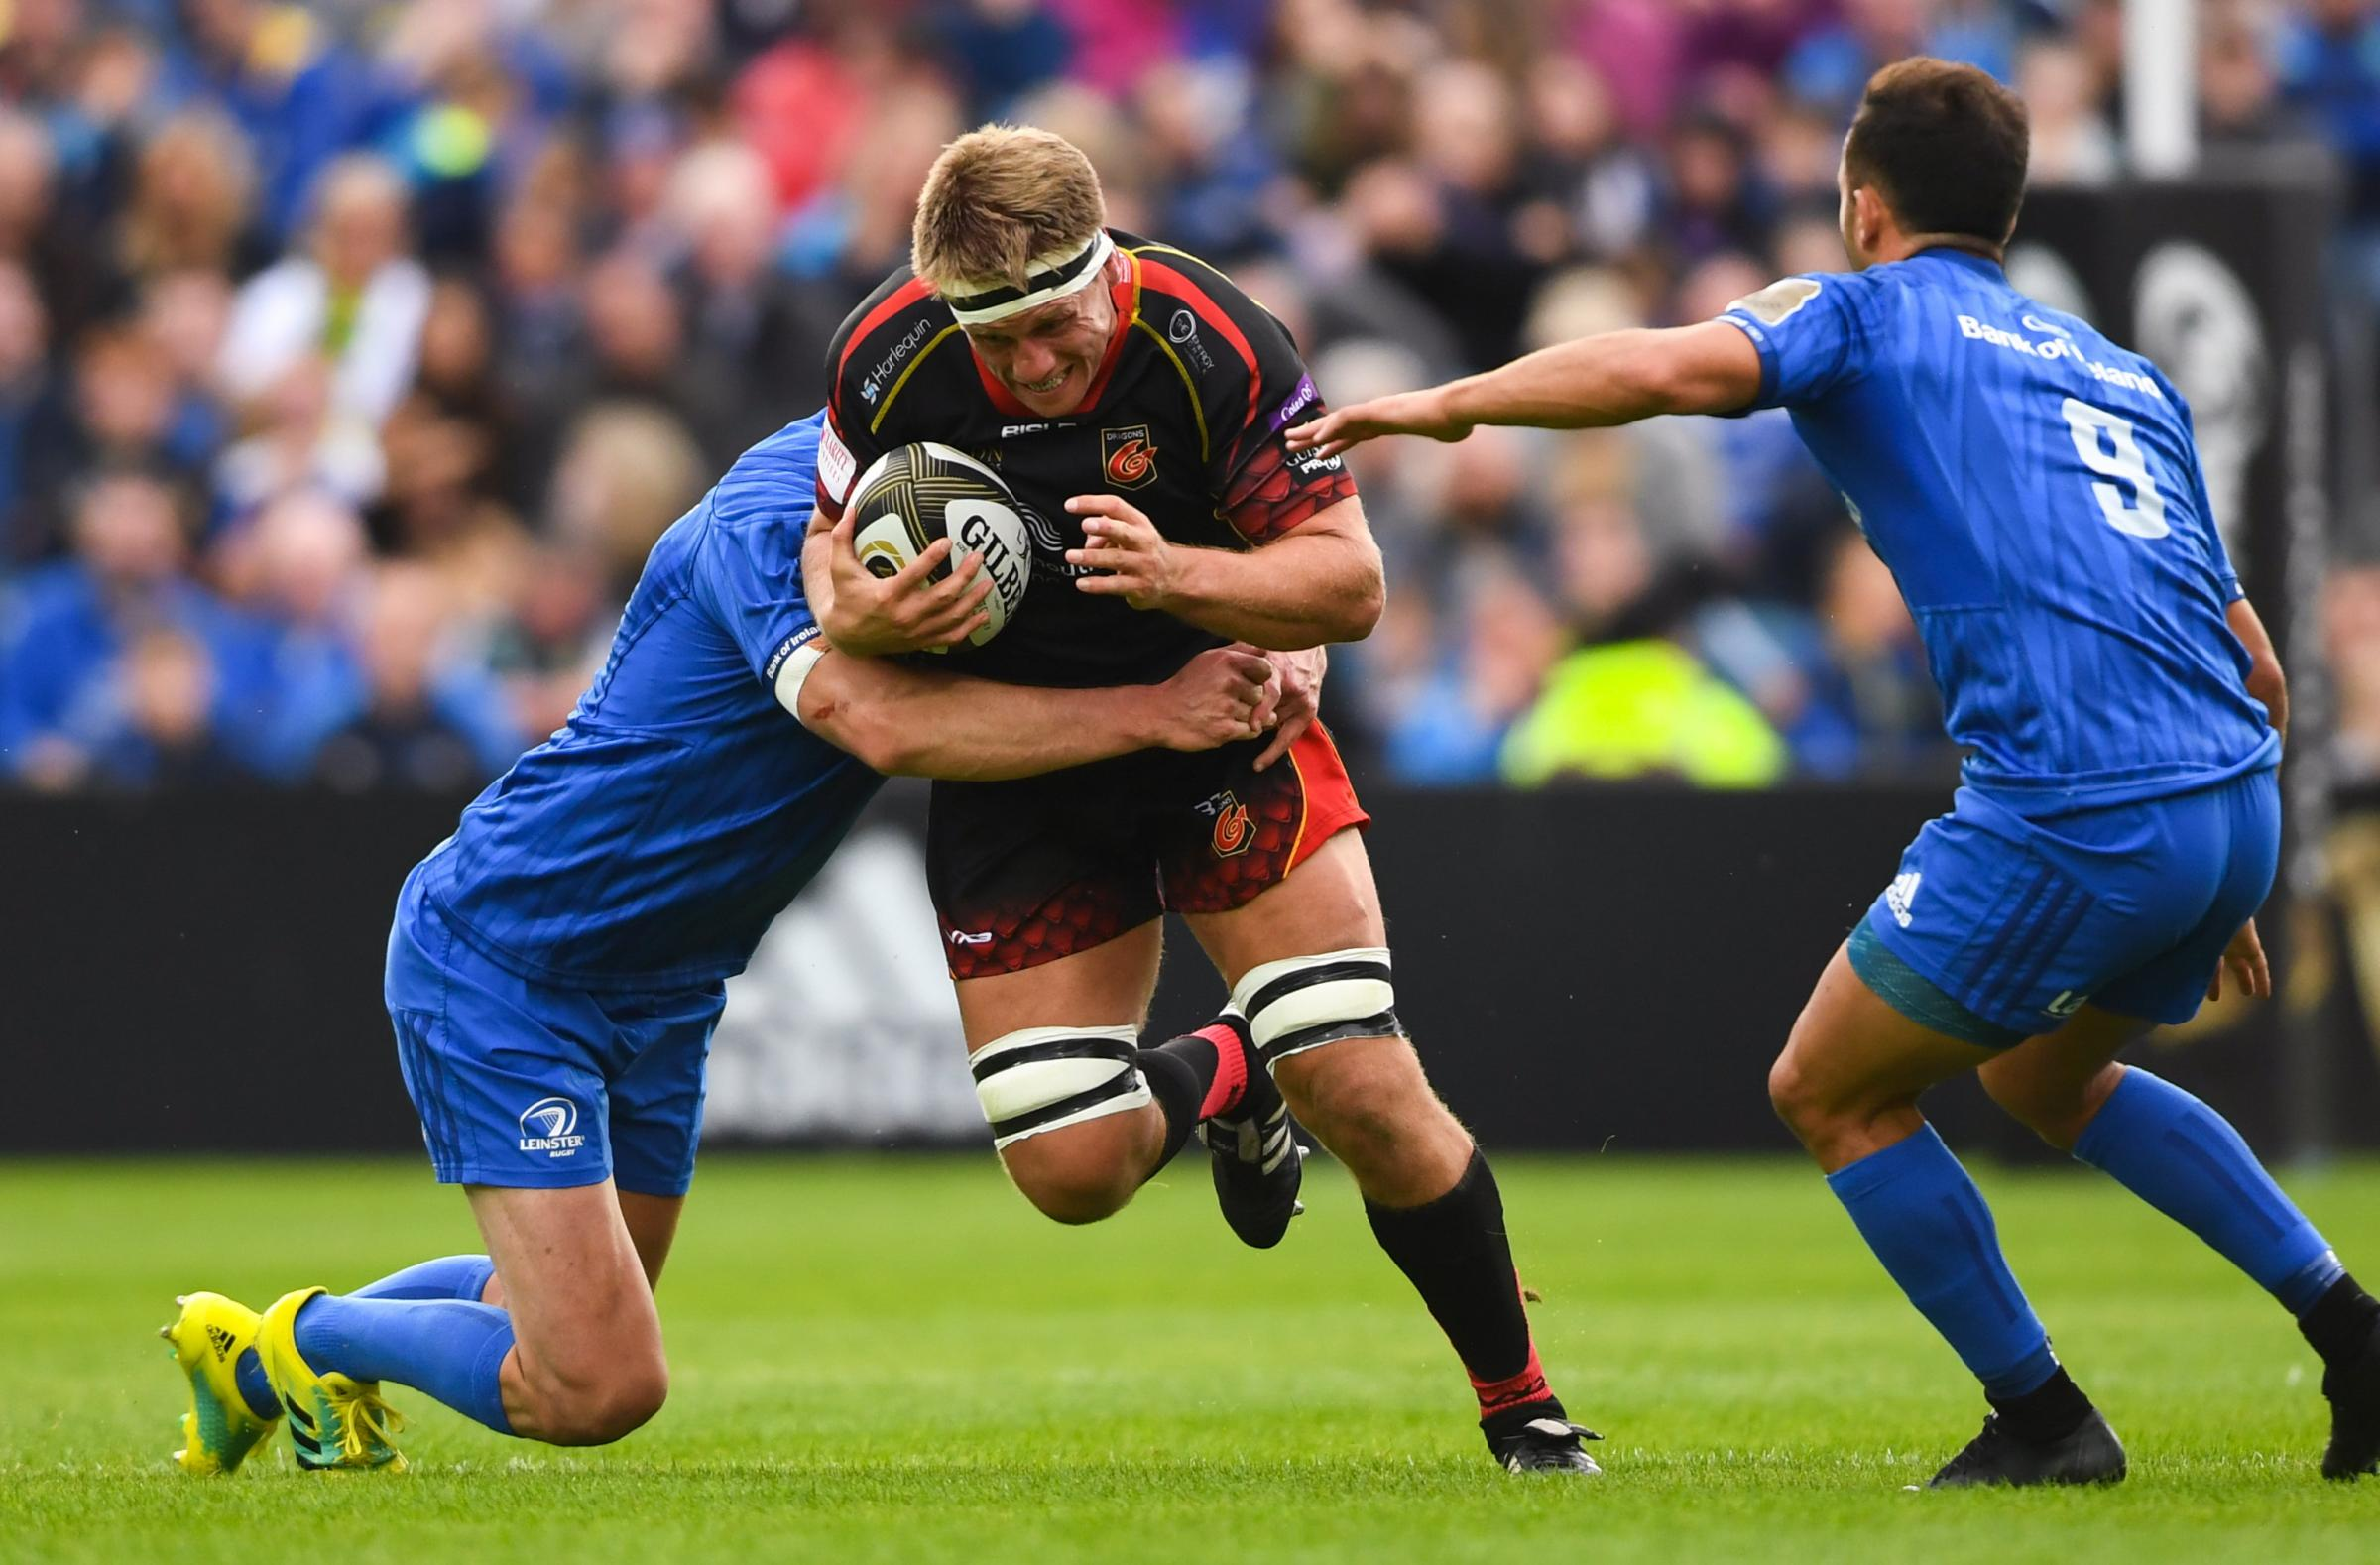 TOUGH TEST: Dragons flanker Nic Cudd won't be complacent against Timisoara Saracens